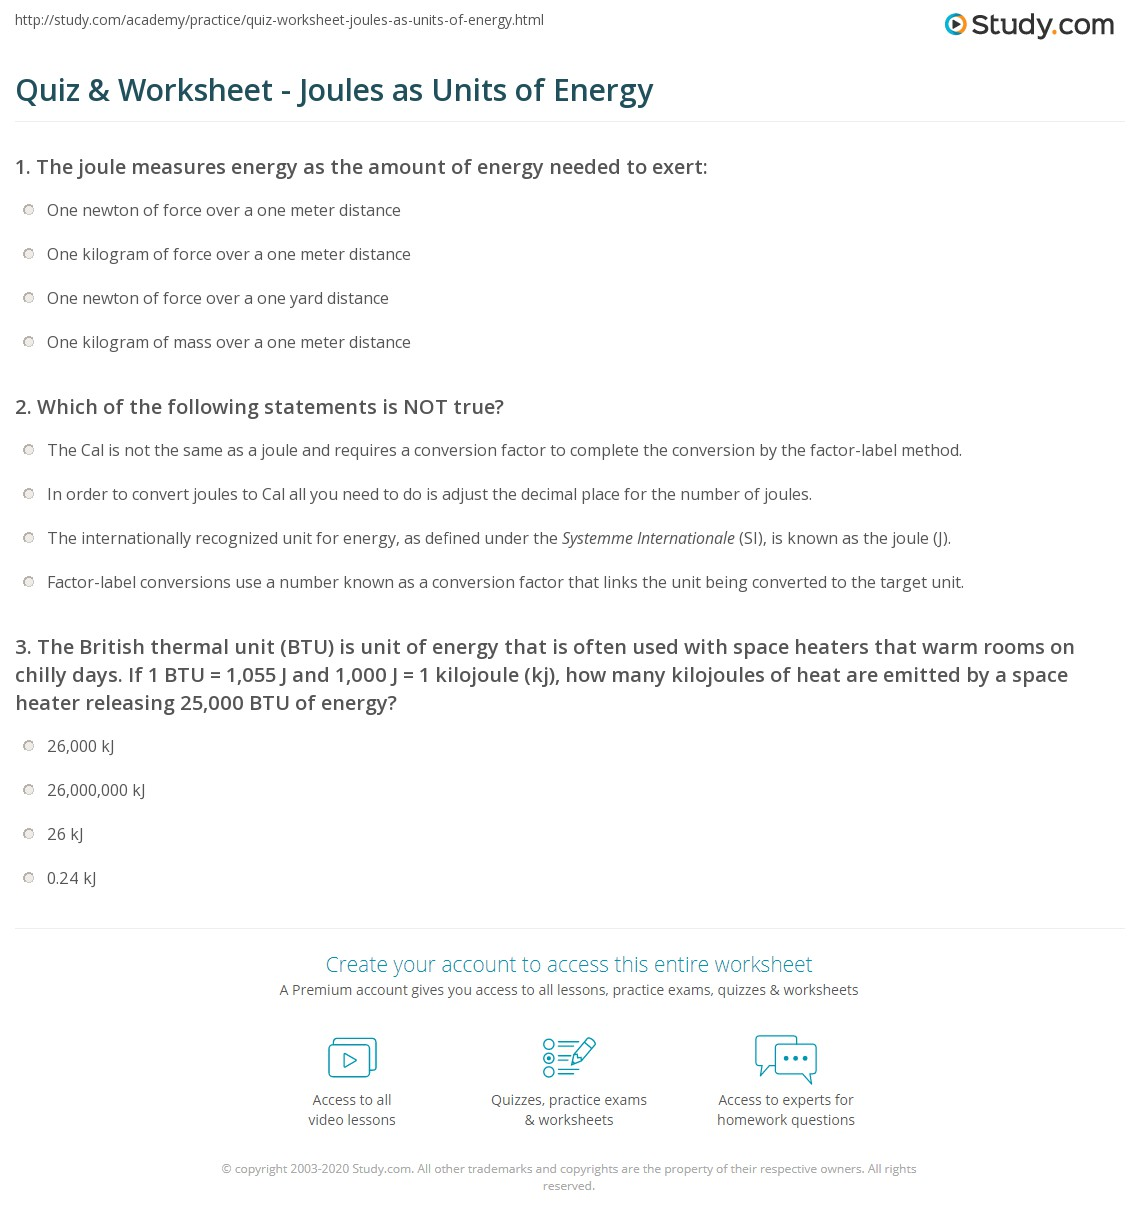 Quiz & Worksheet - Joules as Units of Energy | Study.com